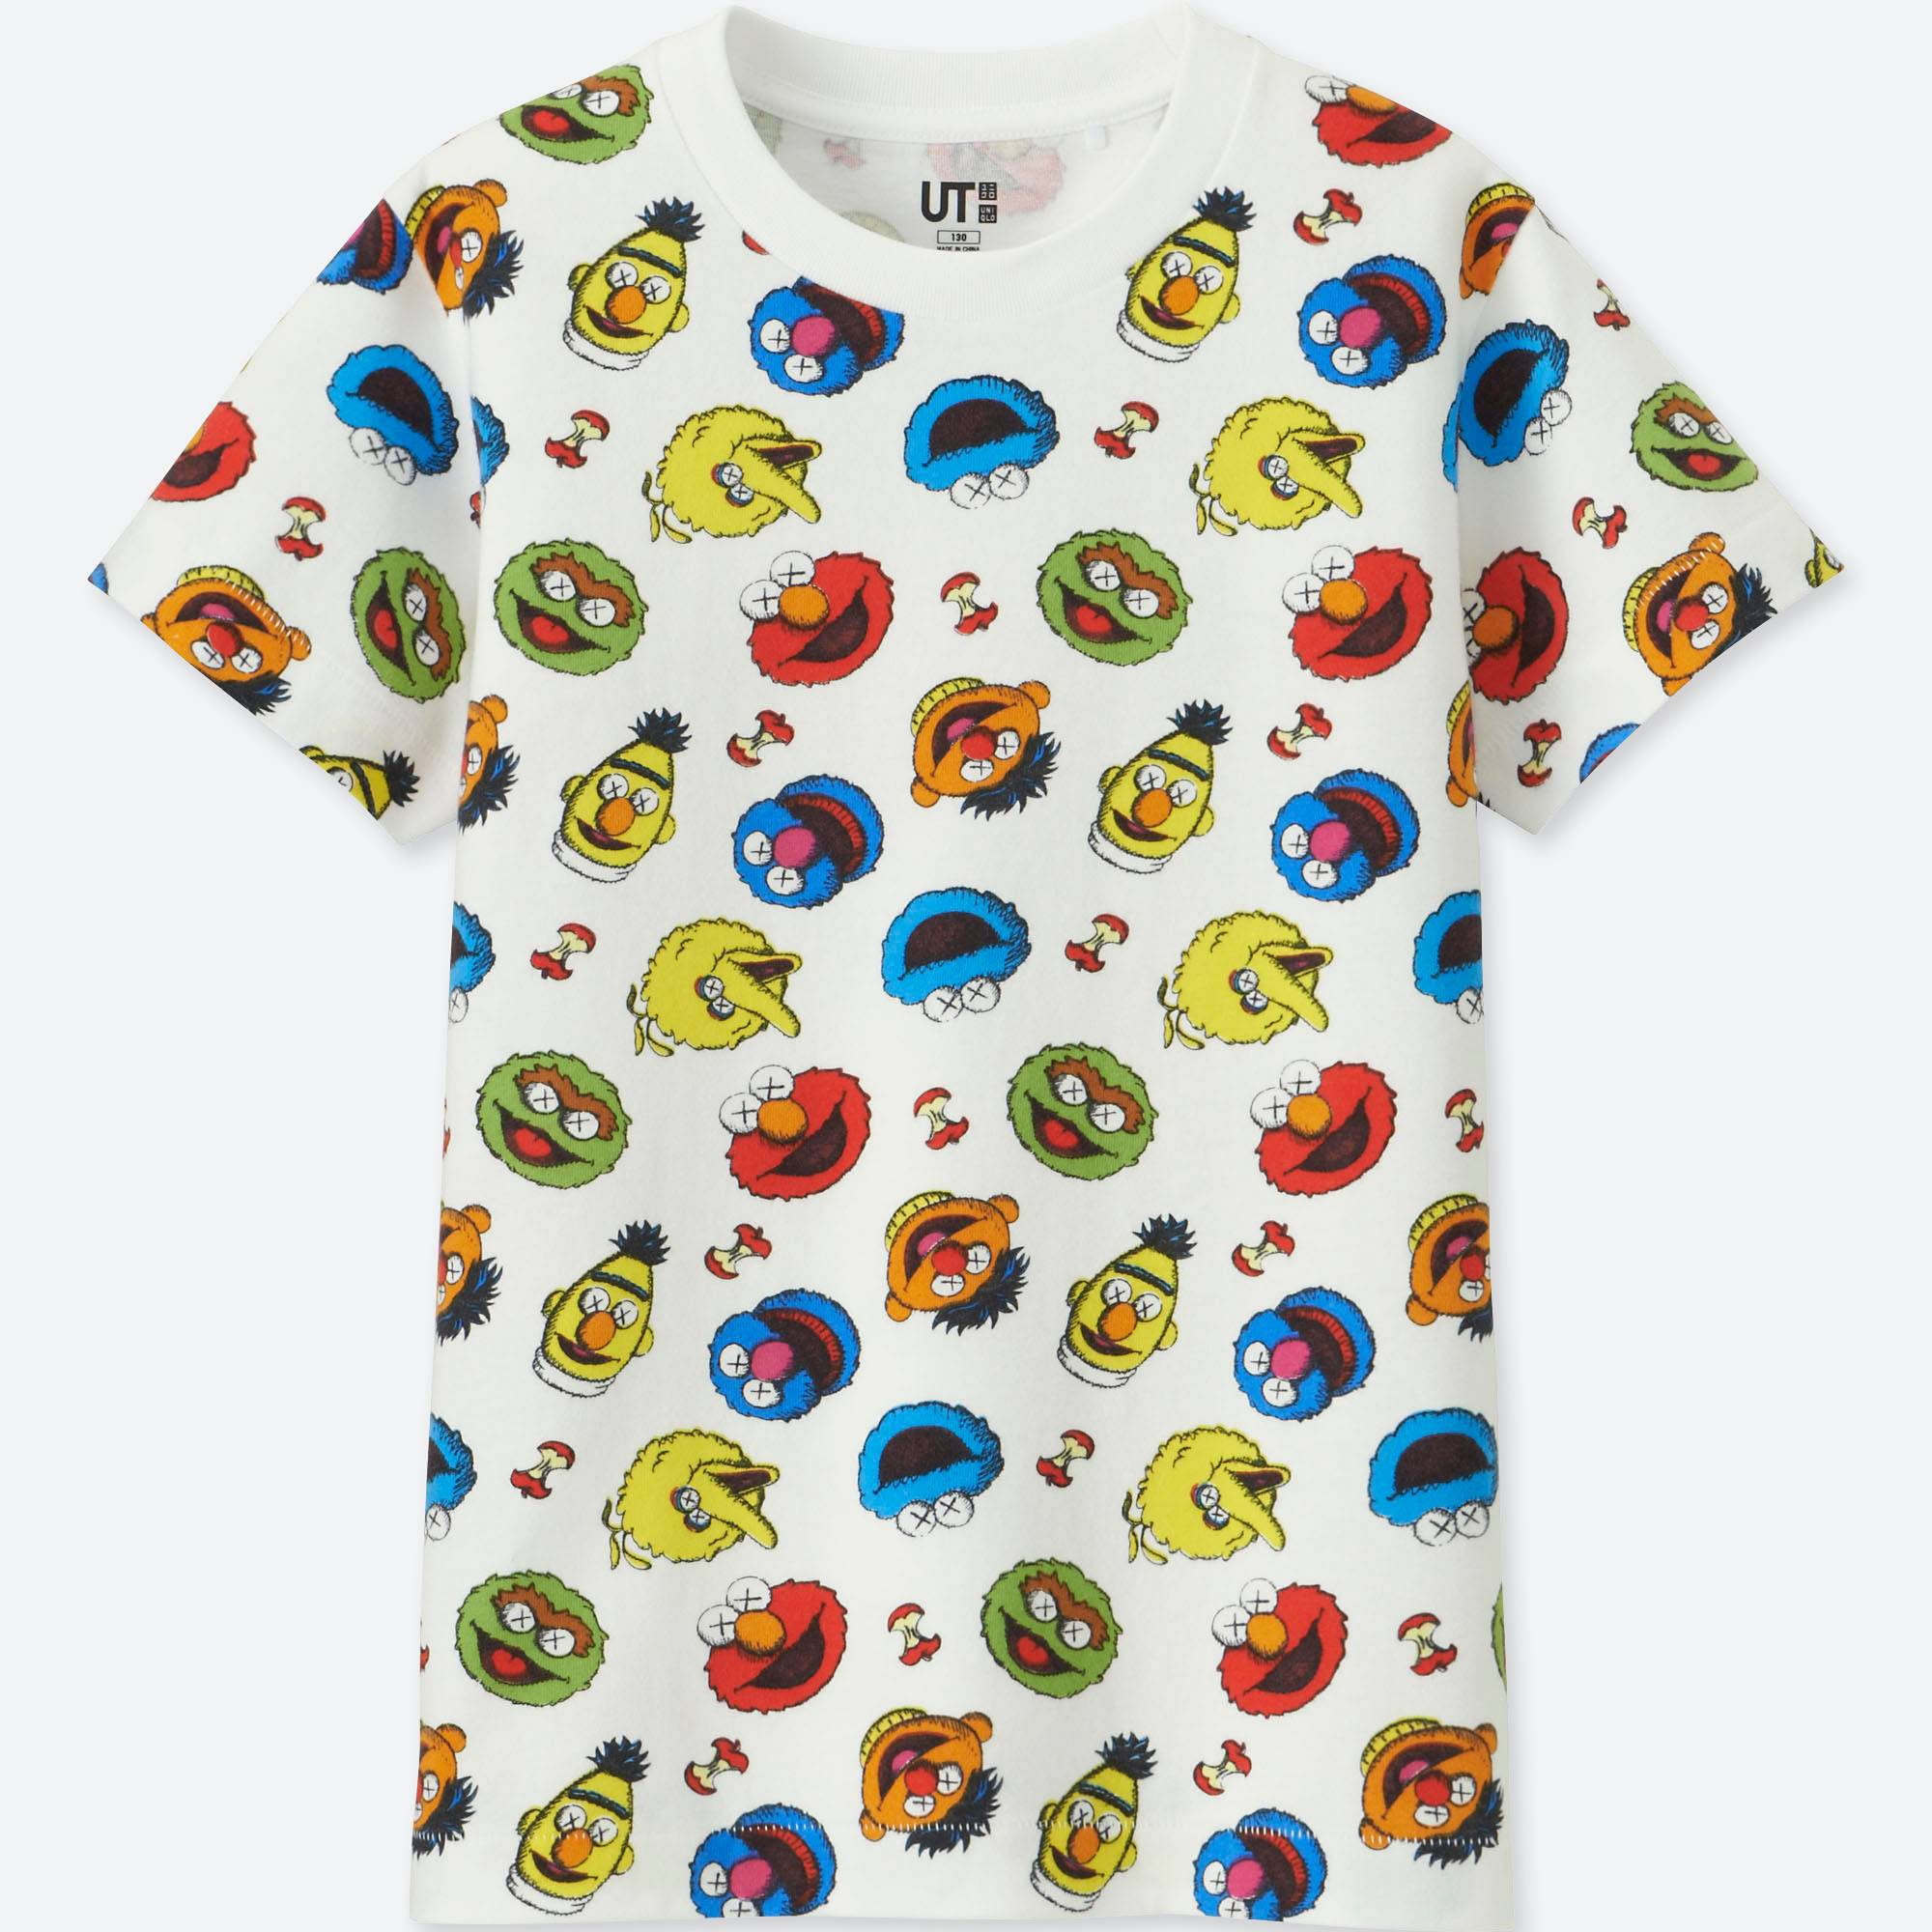 ba87222edf3 UNIQLO UT joins with KAWS and Sesame Street for a new collection. The full T -shirt lineup features 17 different graphic designs in various colour  options.